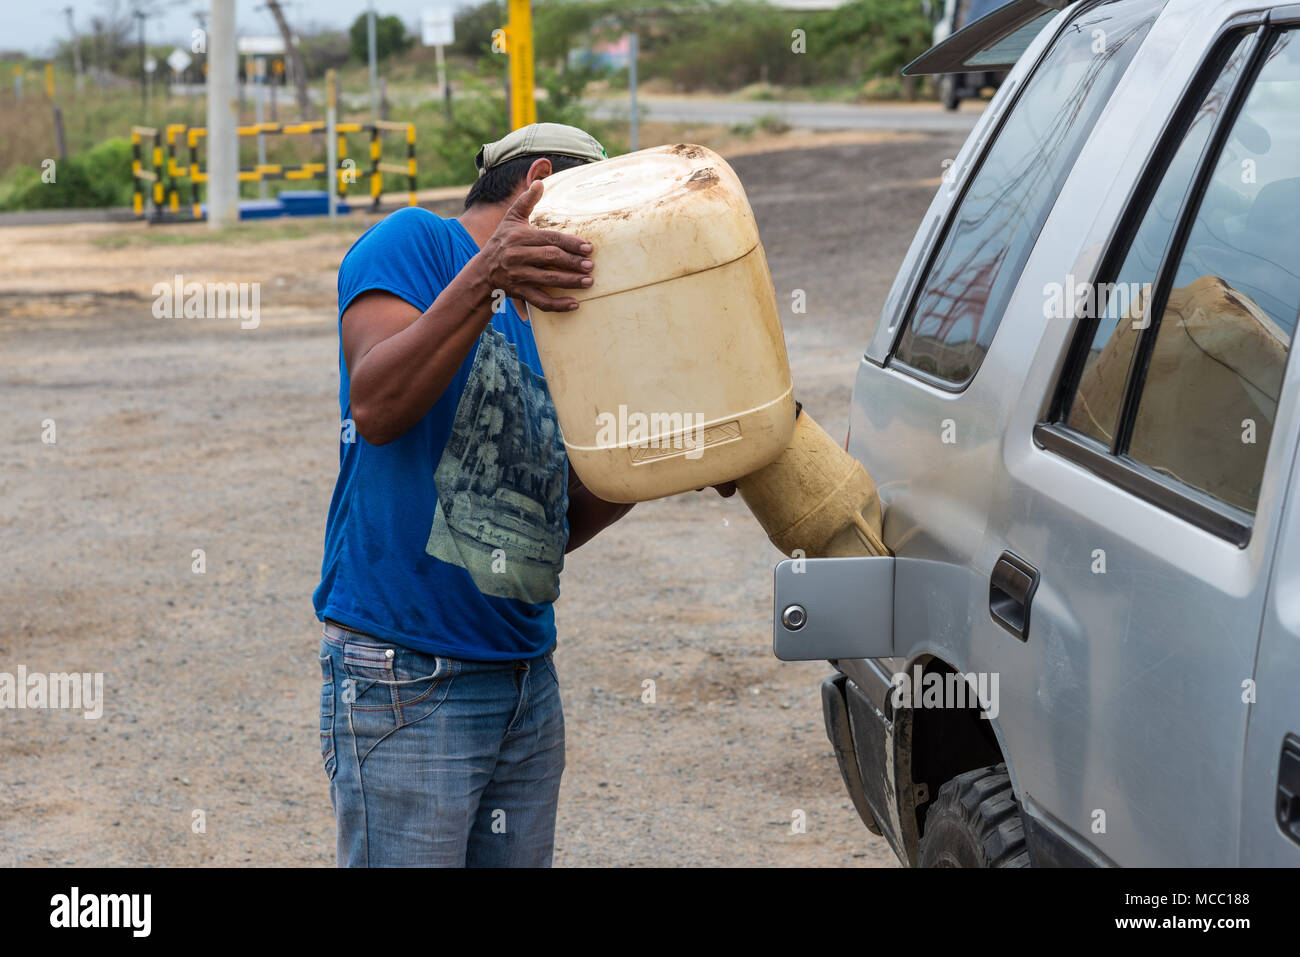 A man fills up gasoline for a car in a rural petro station. Colombia, South America. - Stock Image